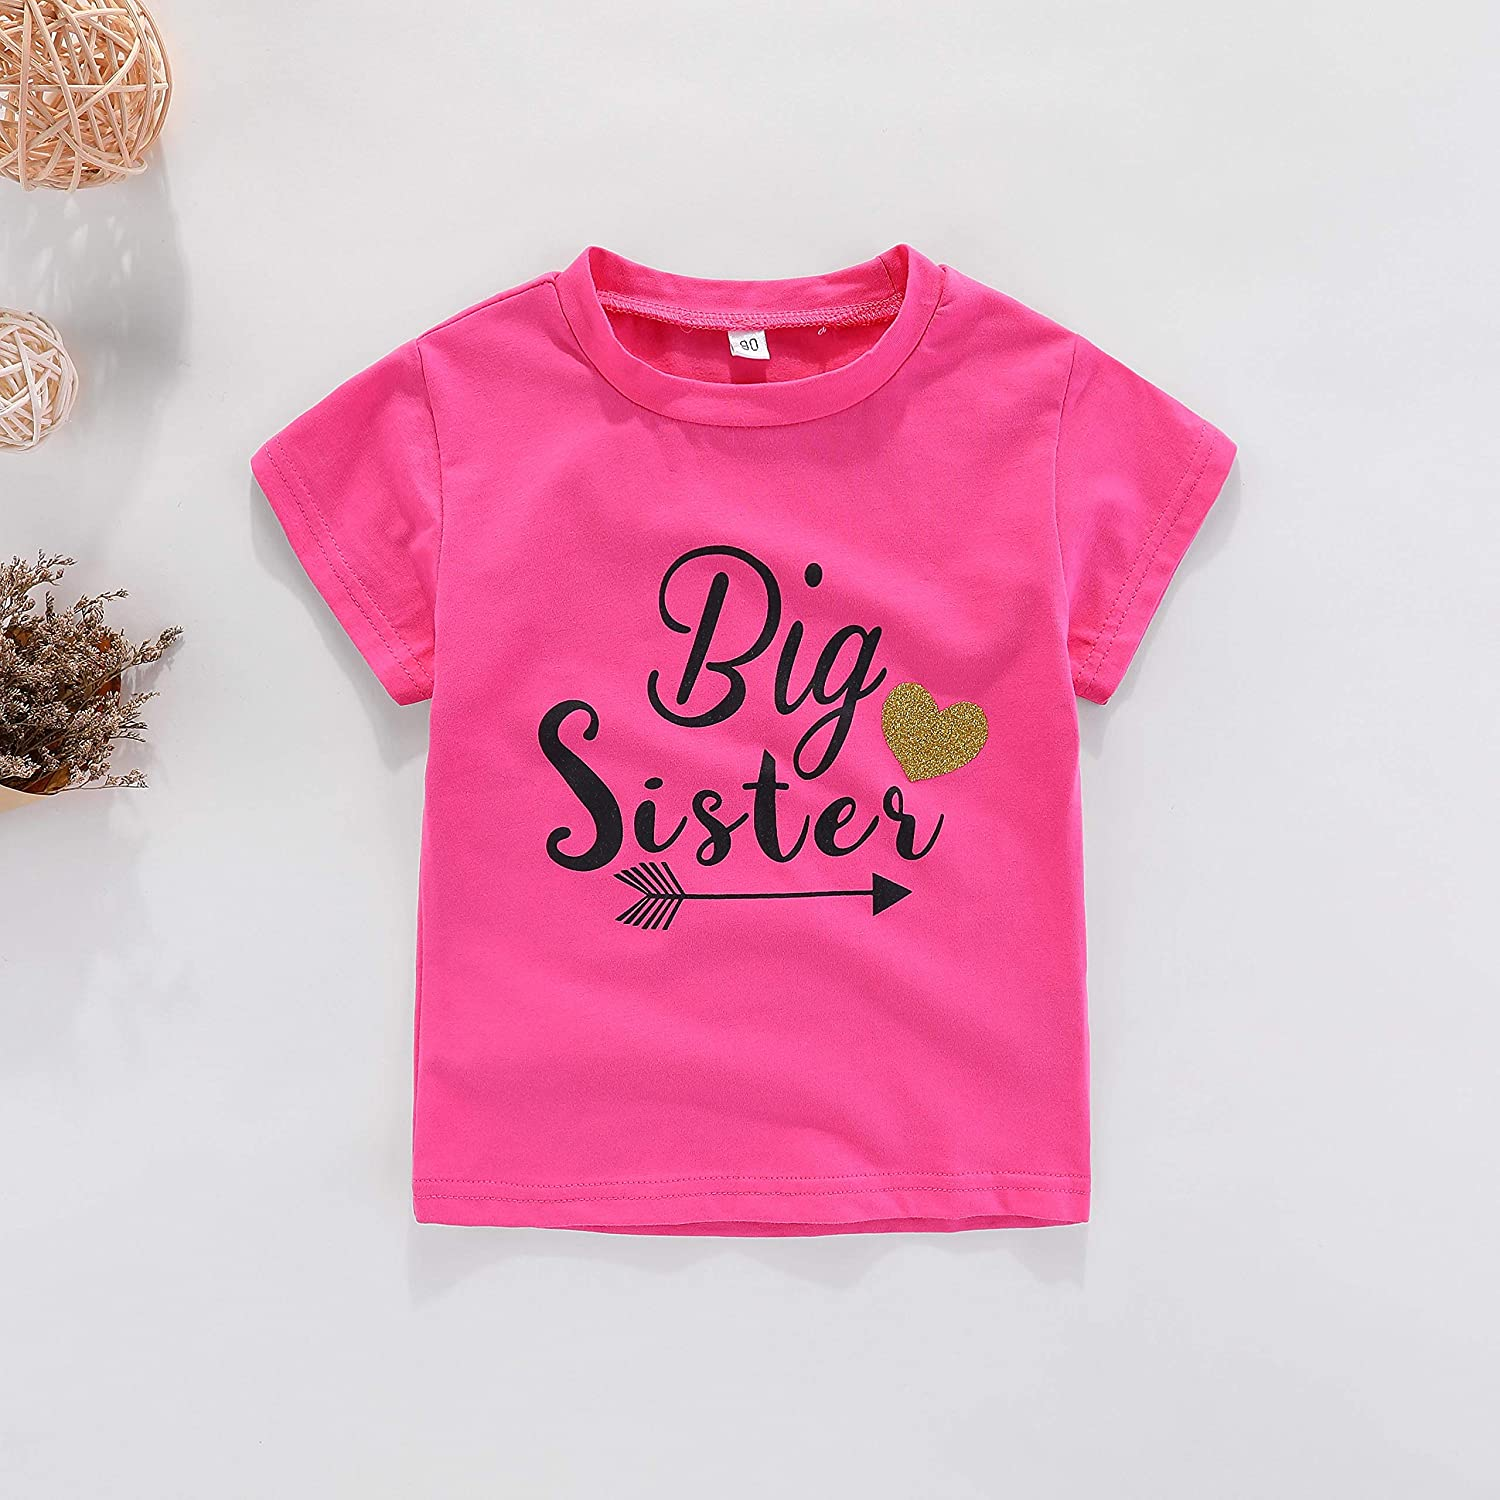 AMMENGBEI Toddler Girls T-Shirt Promoted to Big Sister Letters Print Kids Short Sleeve Tops Blouse 1-6 T